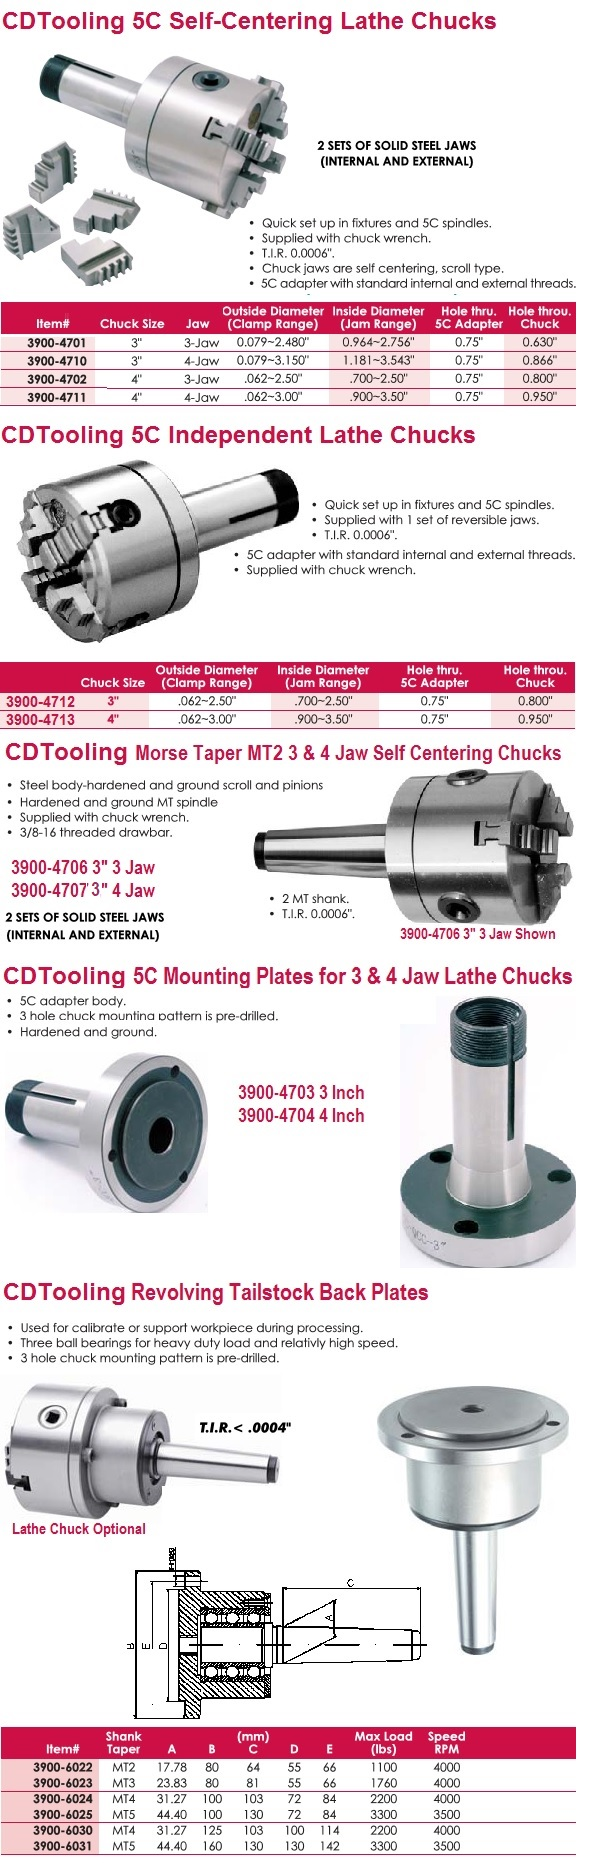 Lathe Chuck 3 and 4 Inch 5C and MT Mount, Fixed and Revolving Head Tail Stock ID 1294-